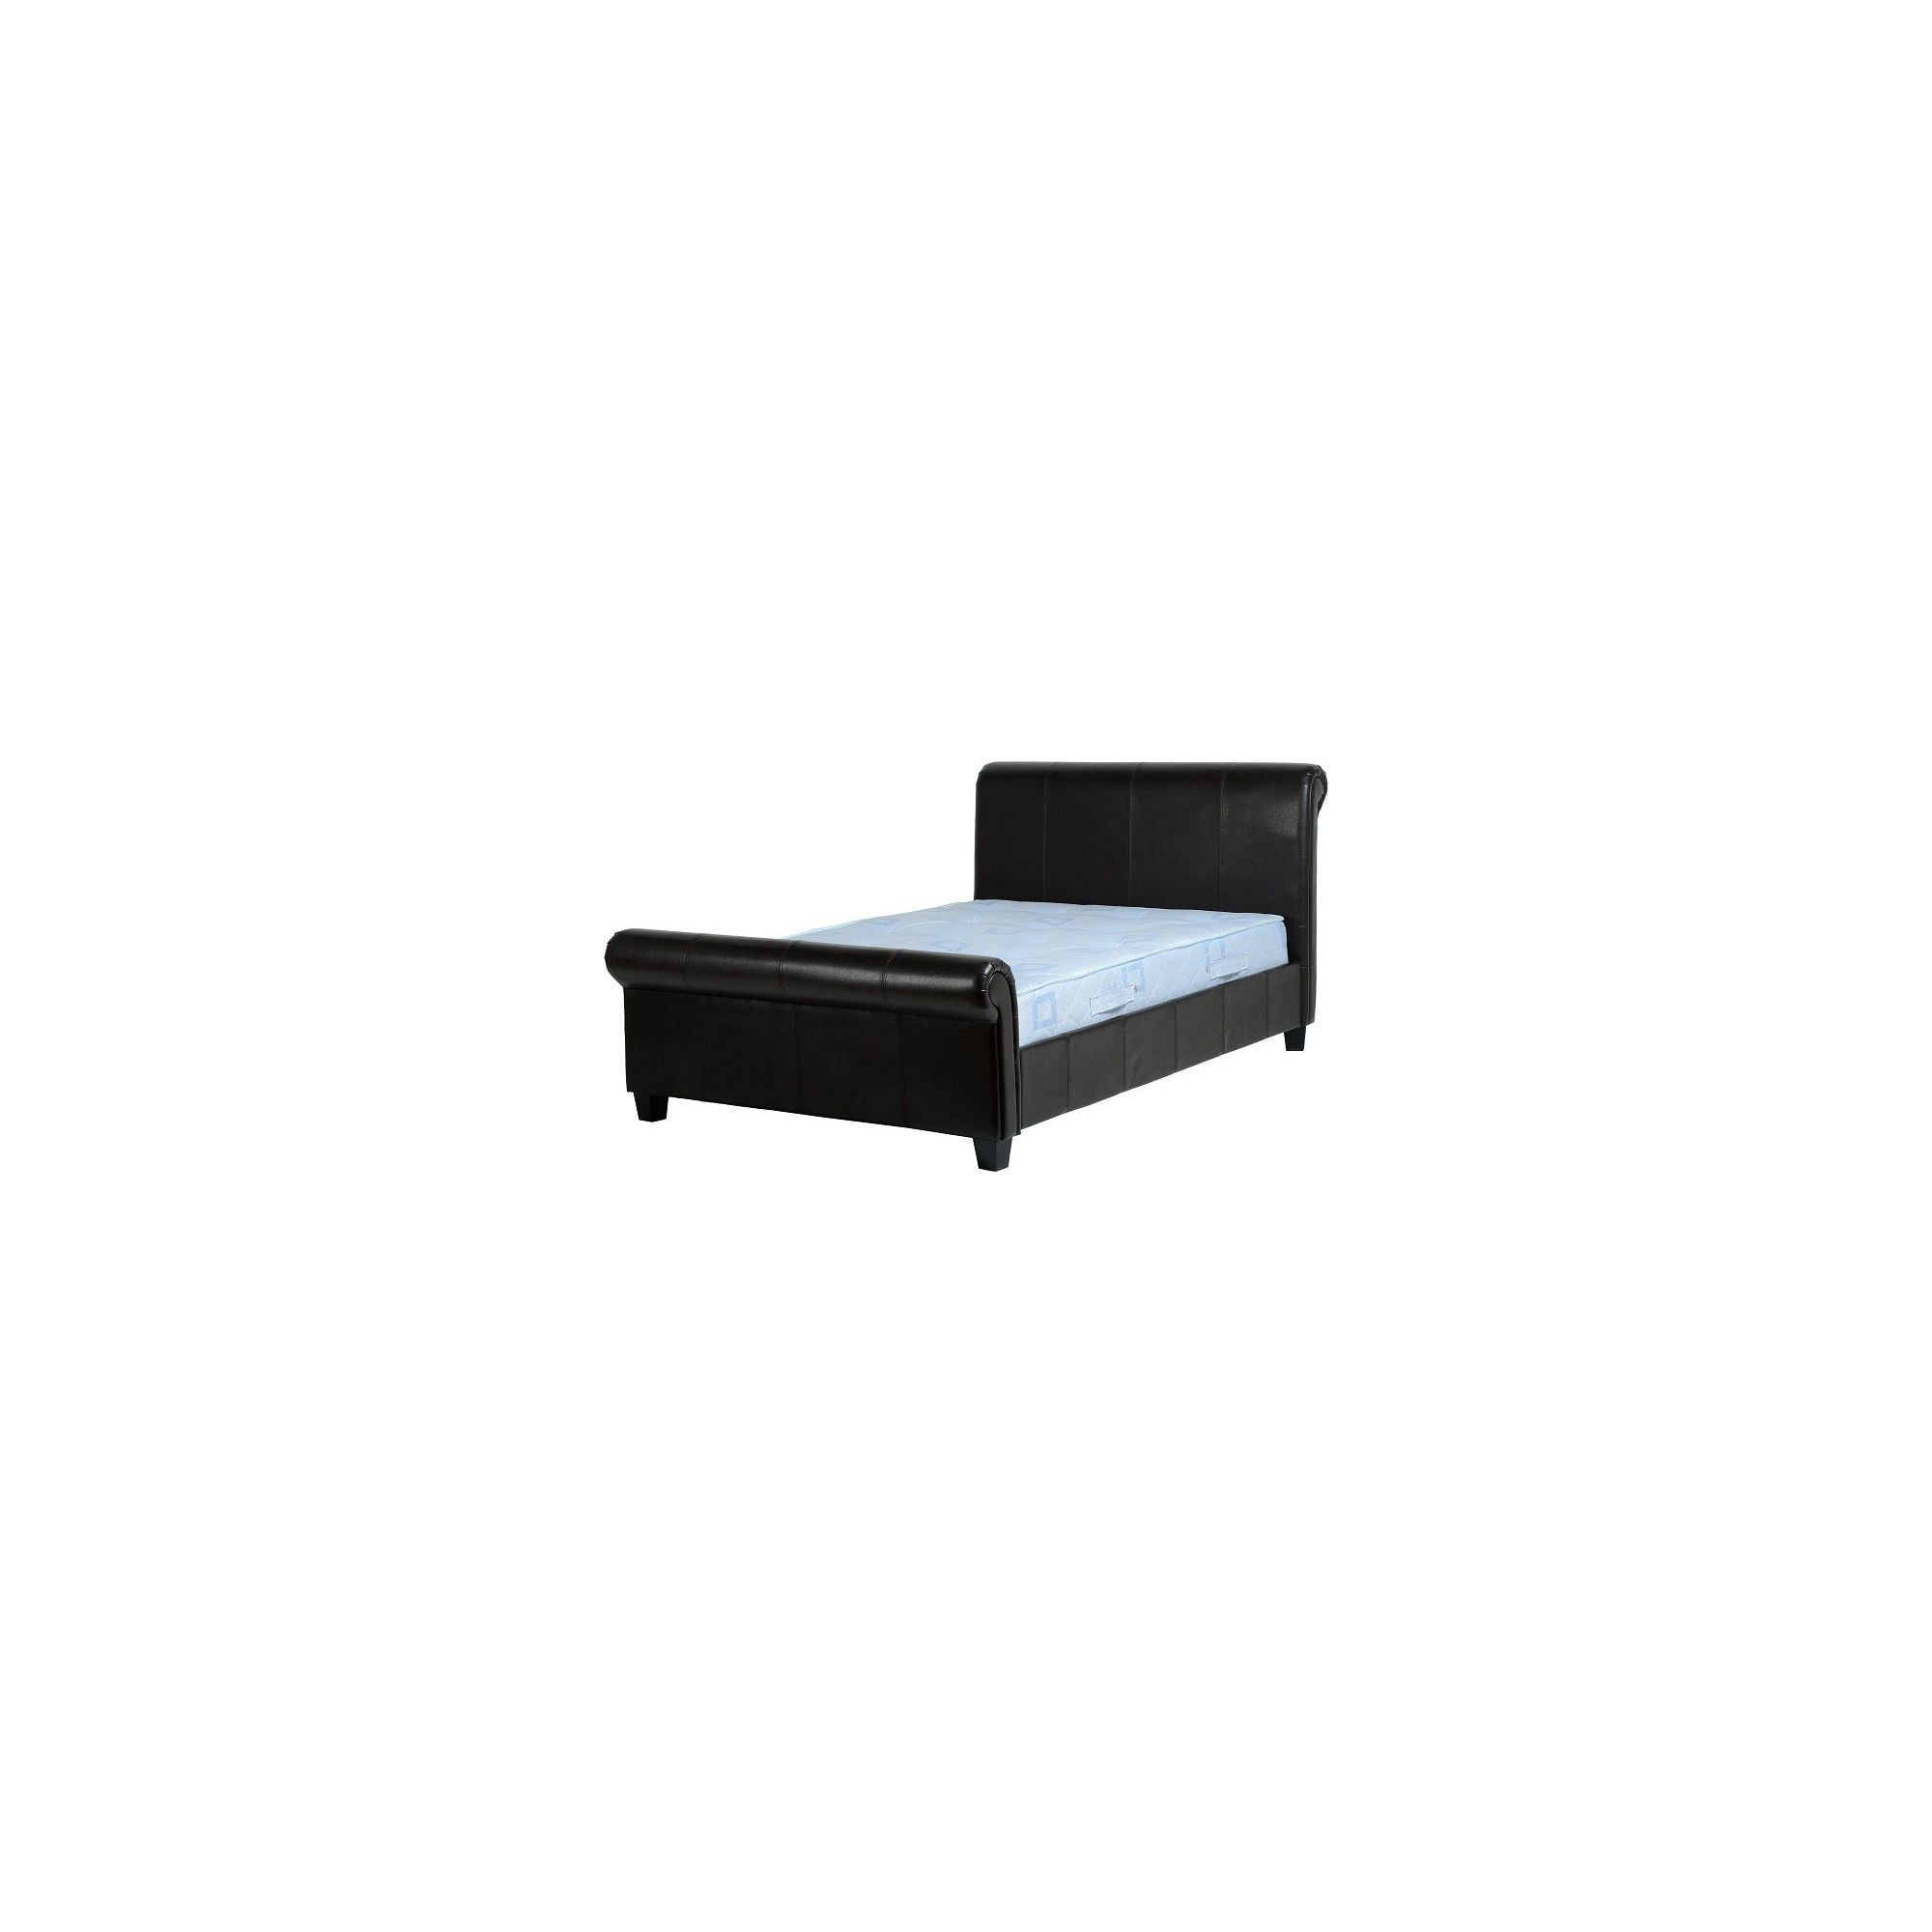 Home Essence Tuscany High Foot End Sleigh Bed - King at Tesco Direct